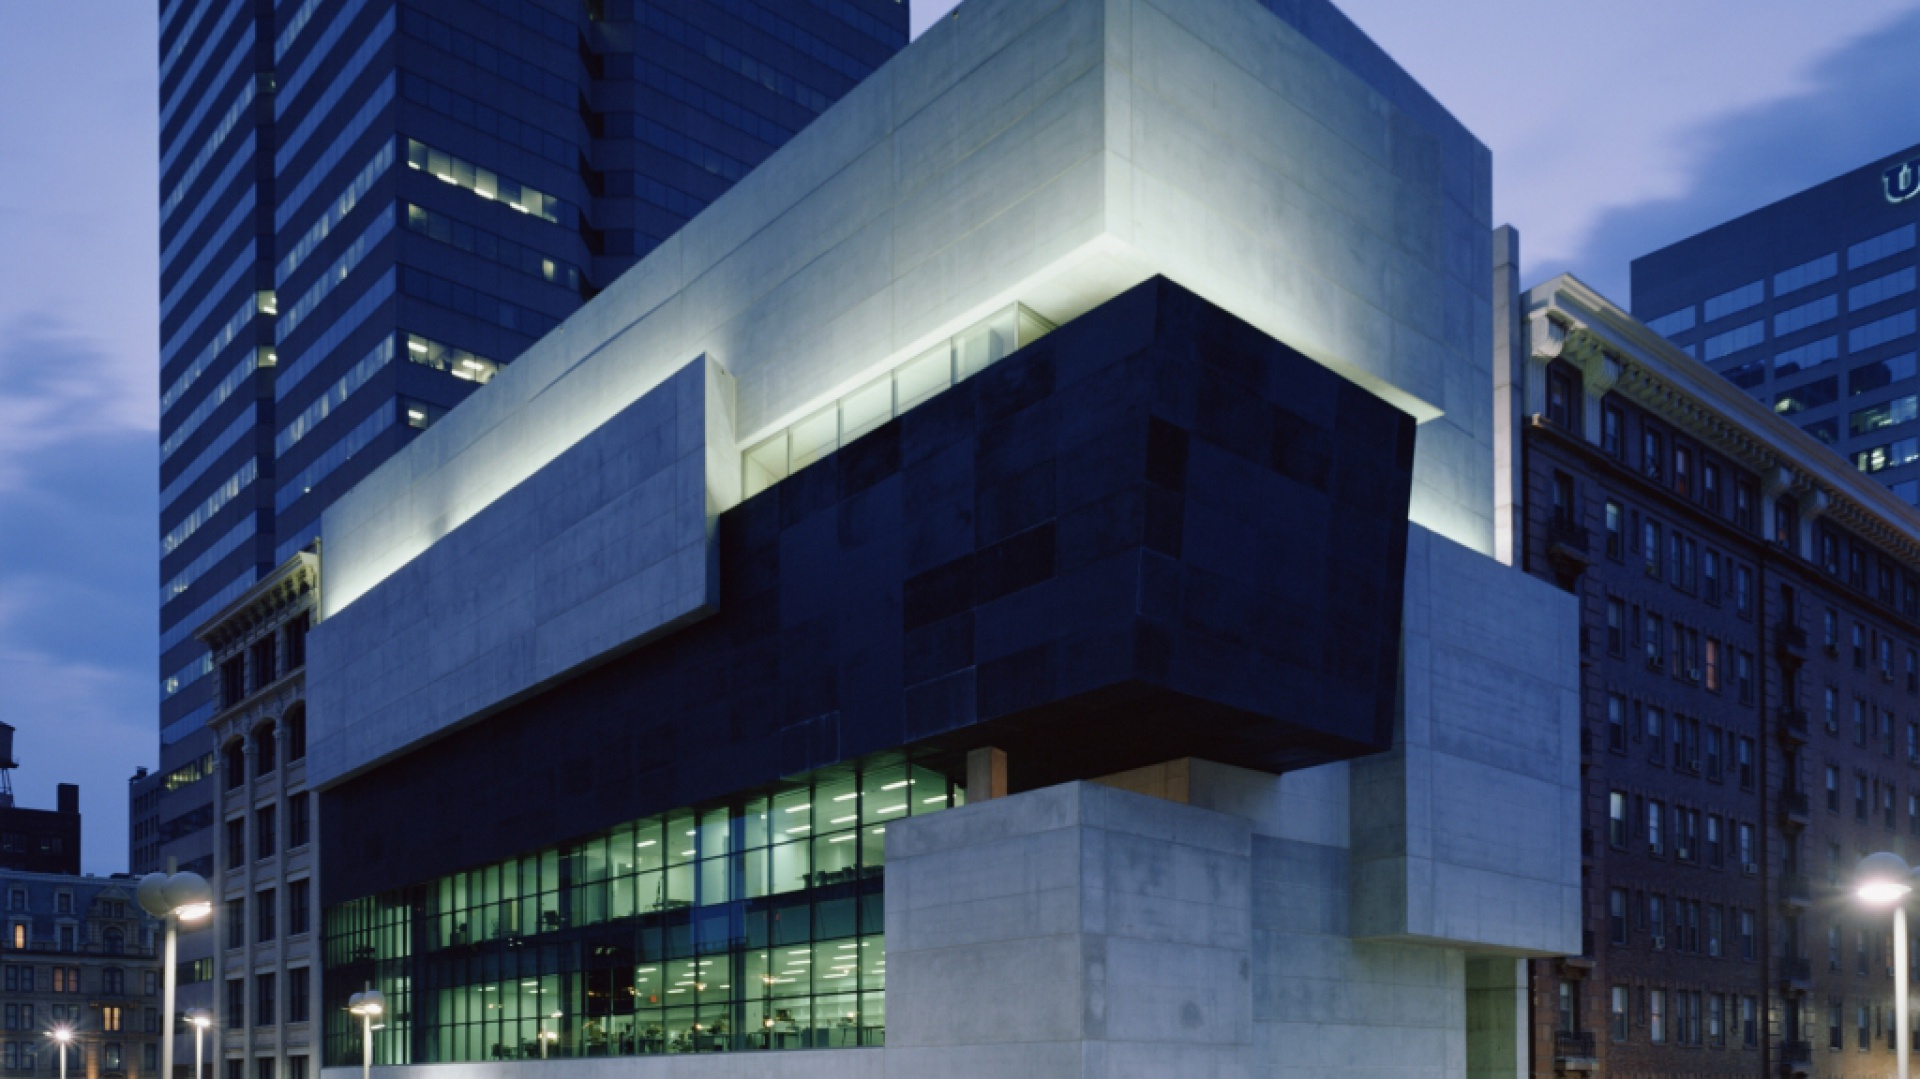 Contemporary Arts Center, Cincinnati. Fot. Roland Halbe.